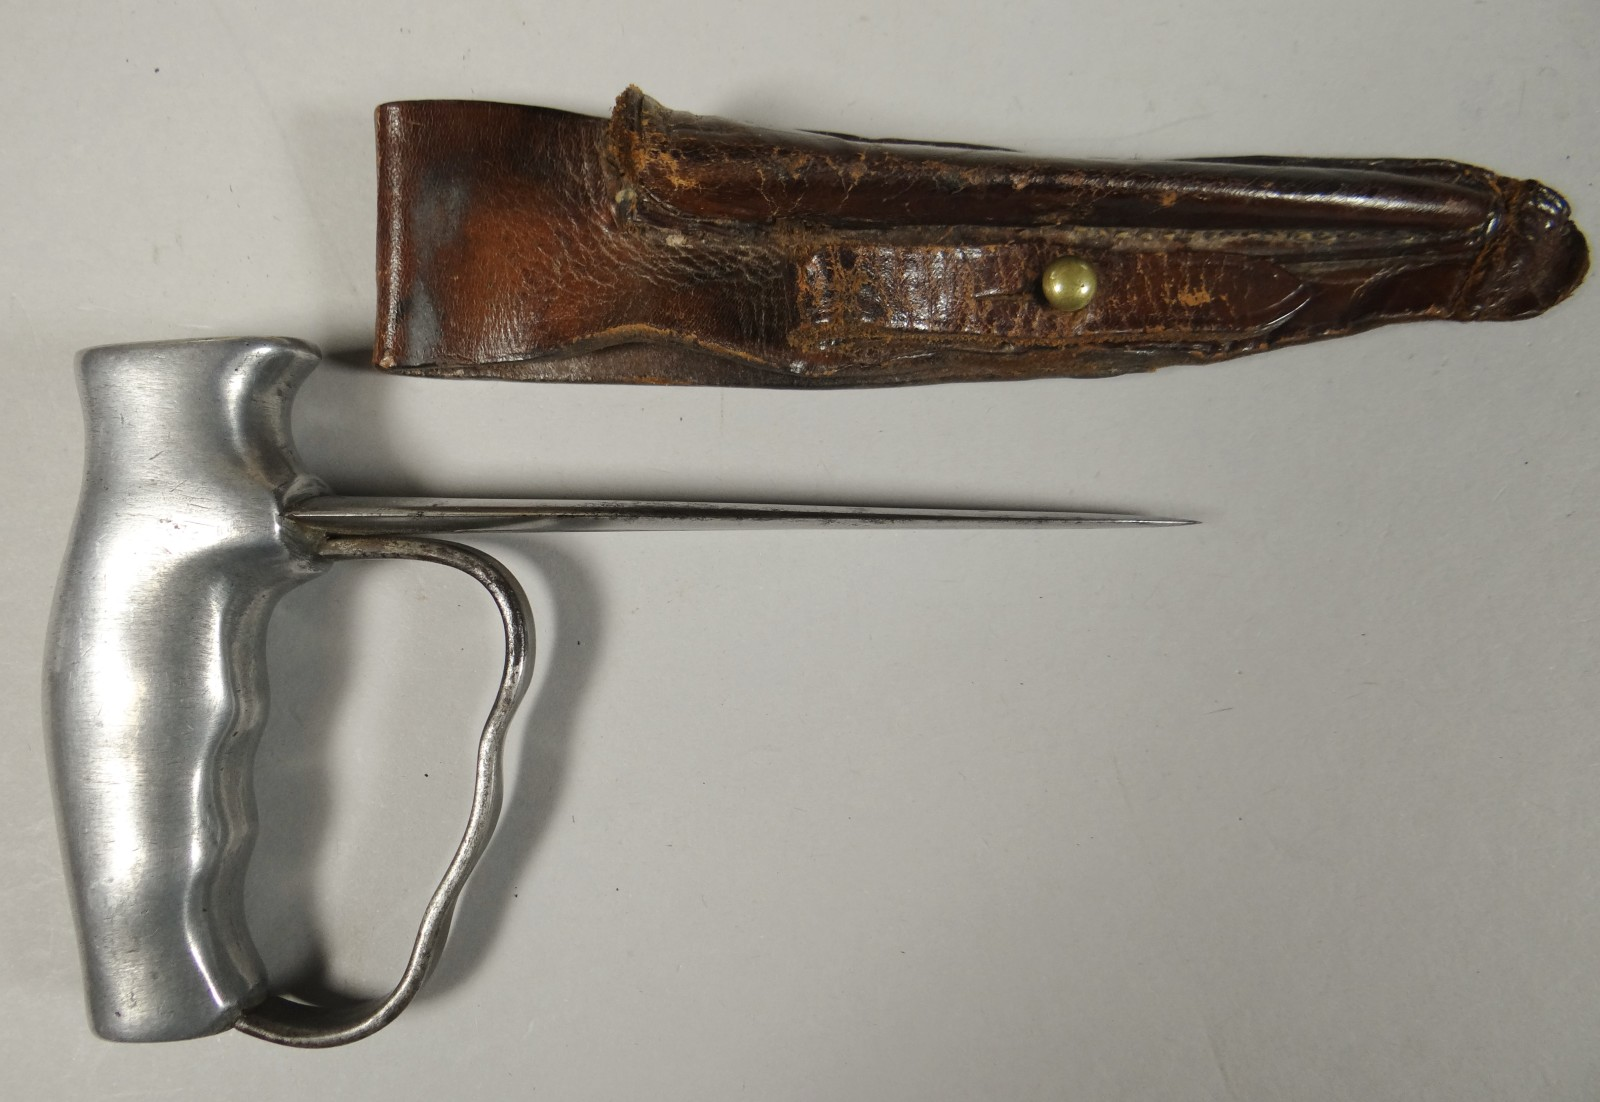 Original and rare WWI Robbins Dudley Fighting knife/push dagger in leather scabbard